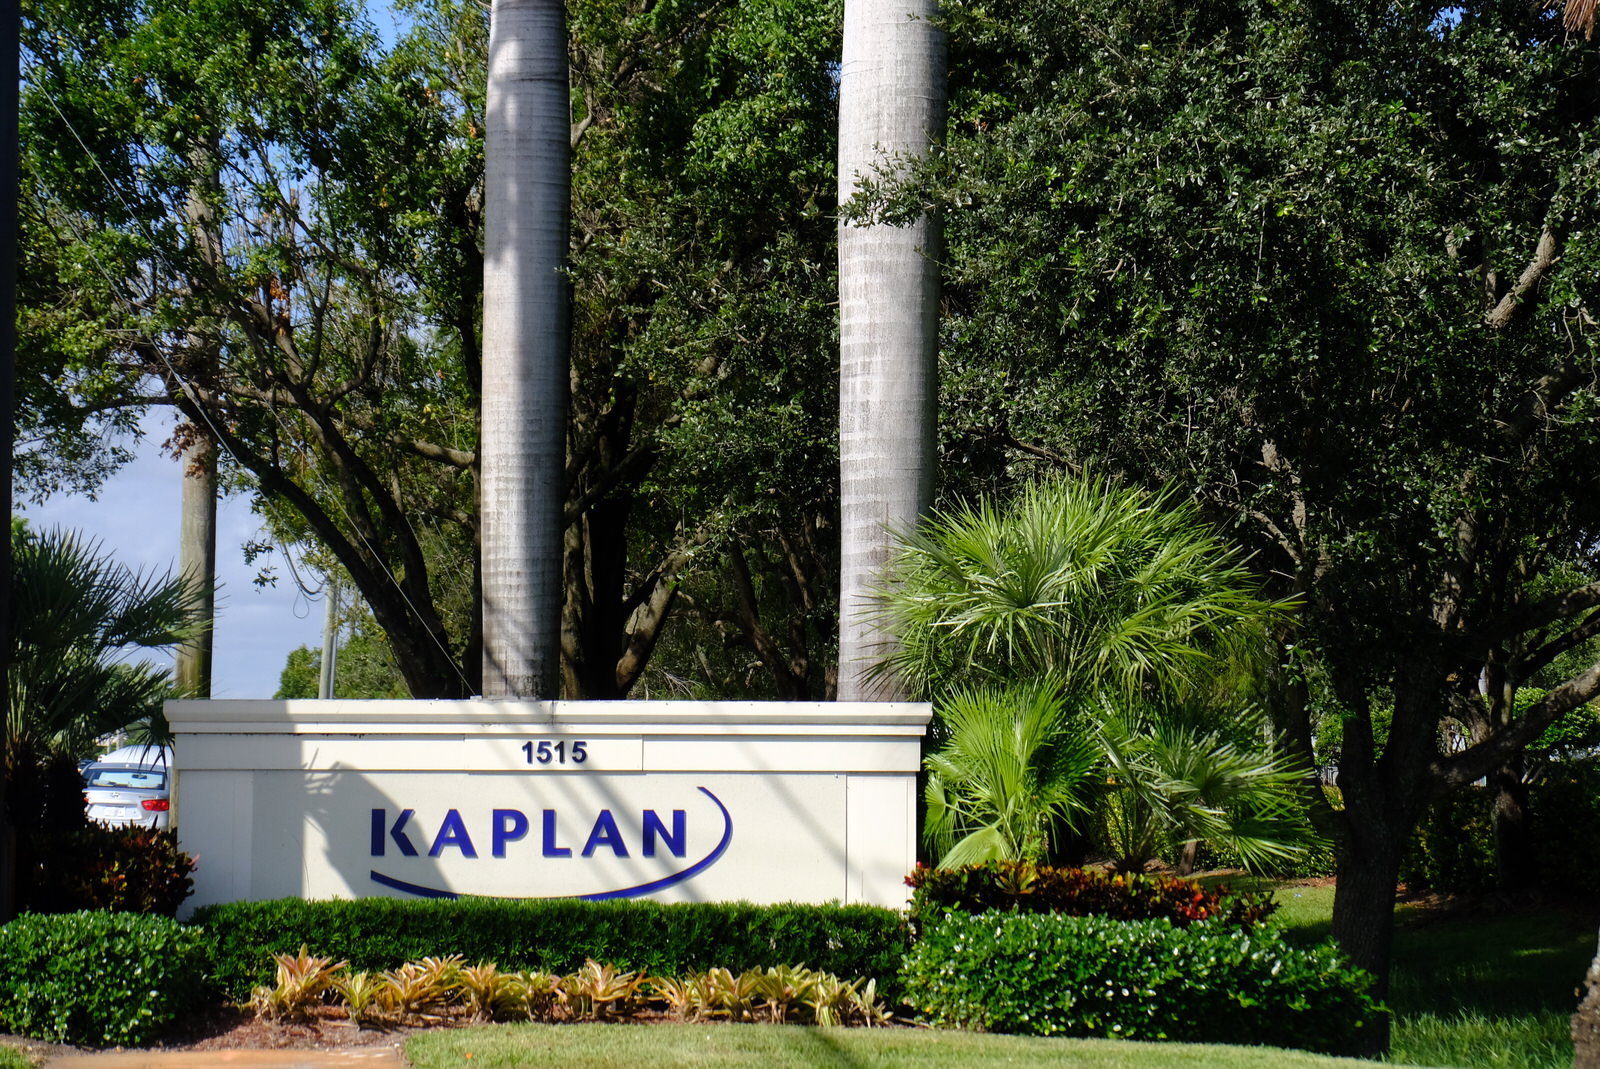 Entrance to Kaplan's corporate headquarters in Fort Lauderdale, Florida.